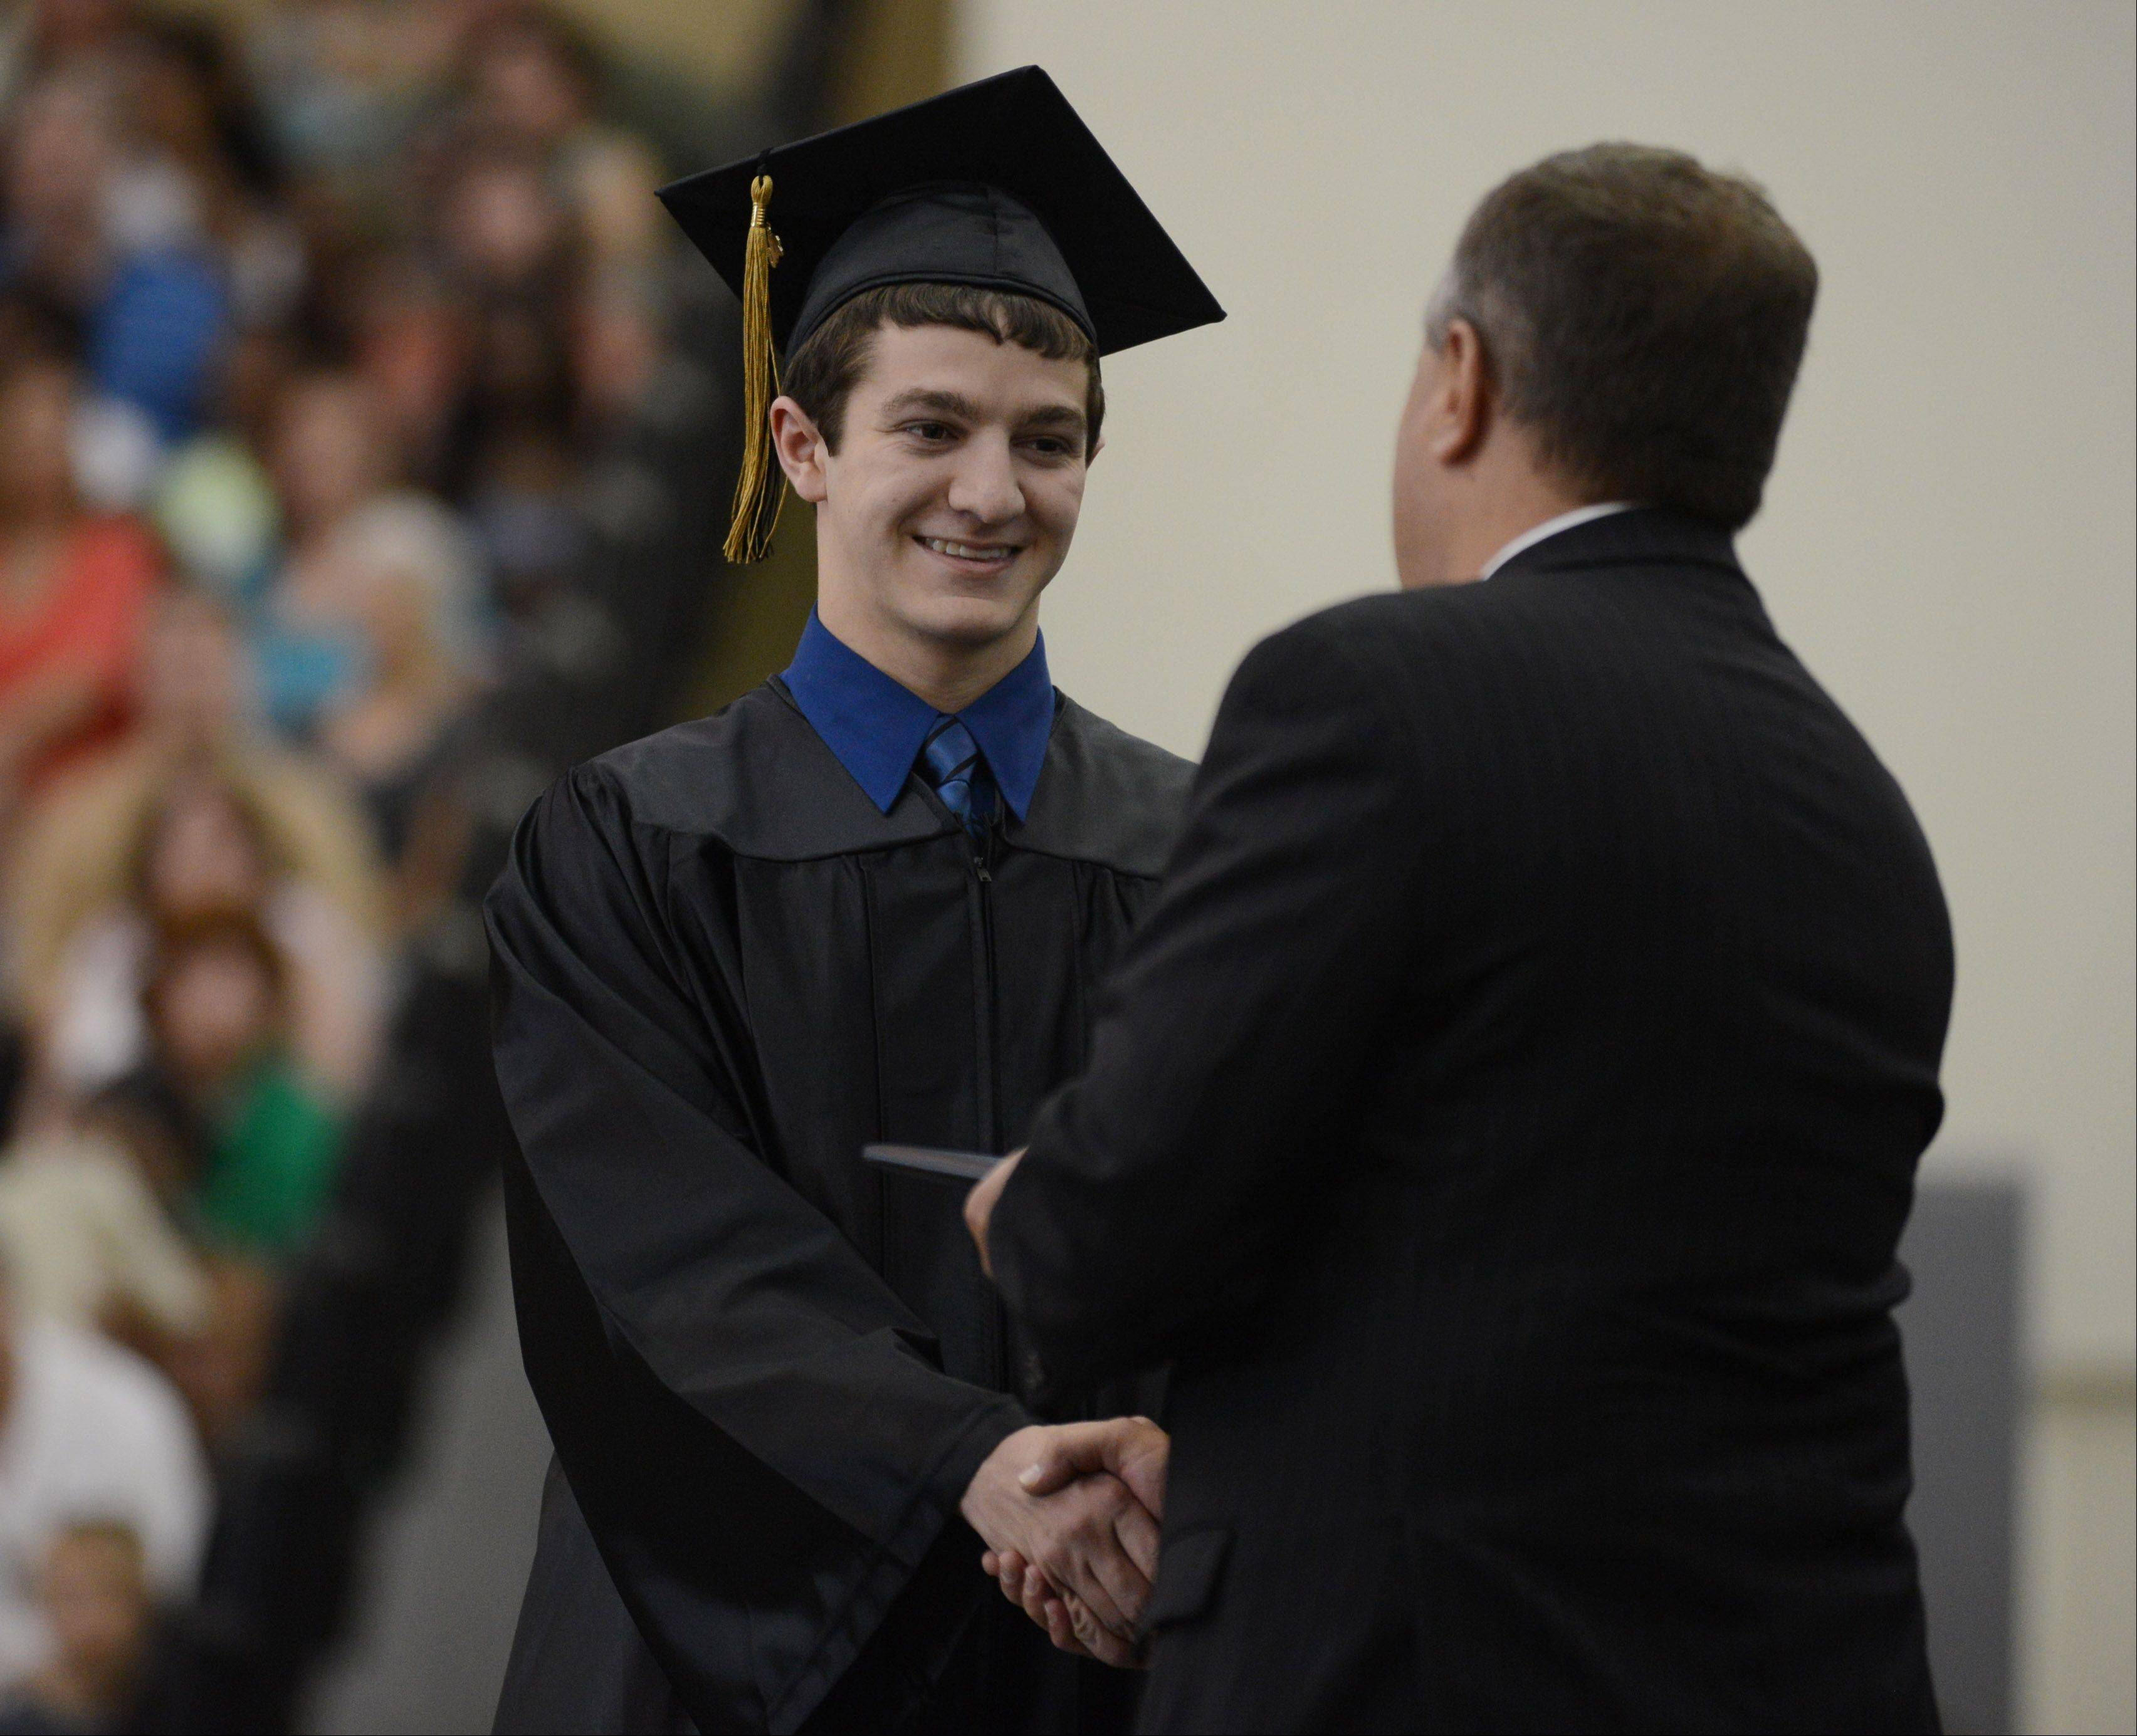 Images from the Grayslake North High School graduation on Sunday, May 19 in Grayslake.